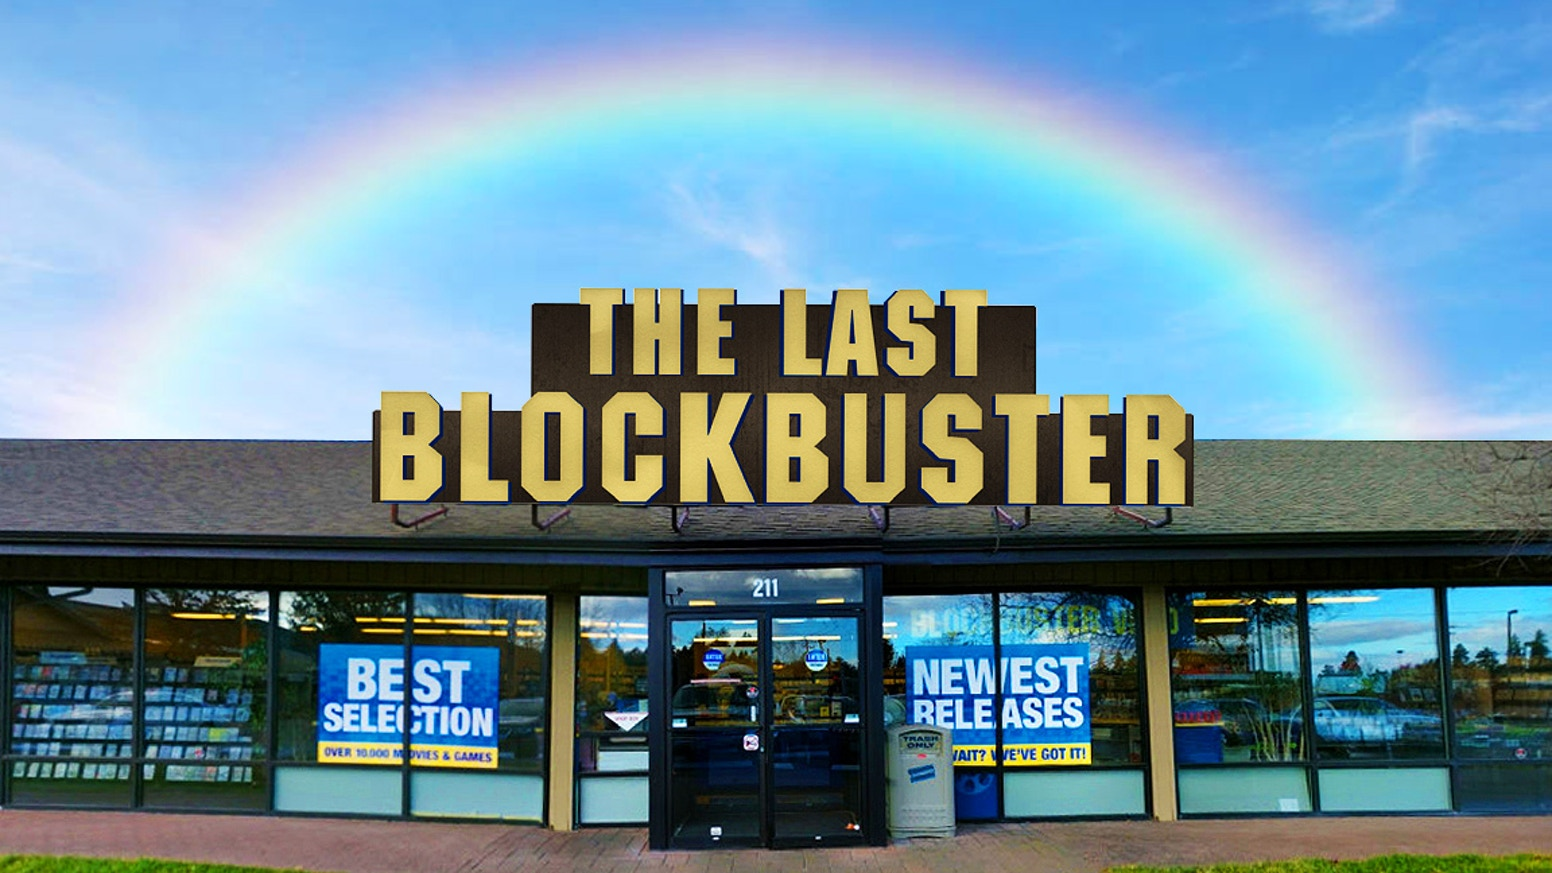 A feature length documentary about the rise and fall of Blockbuster video and the last remaining store.